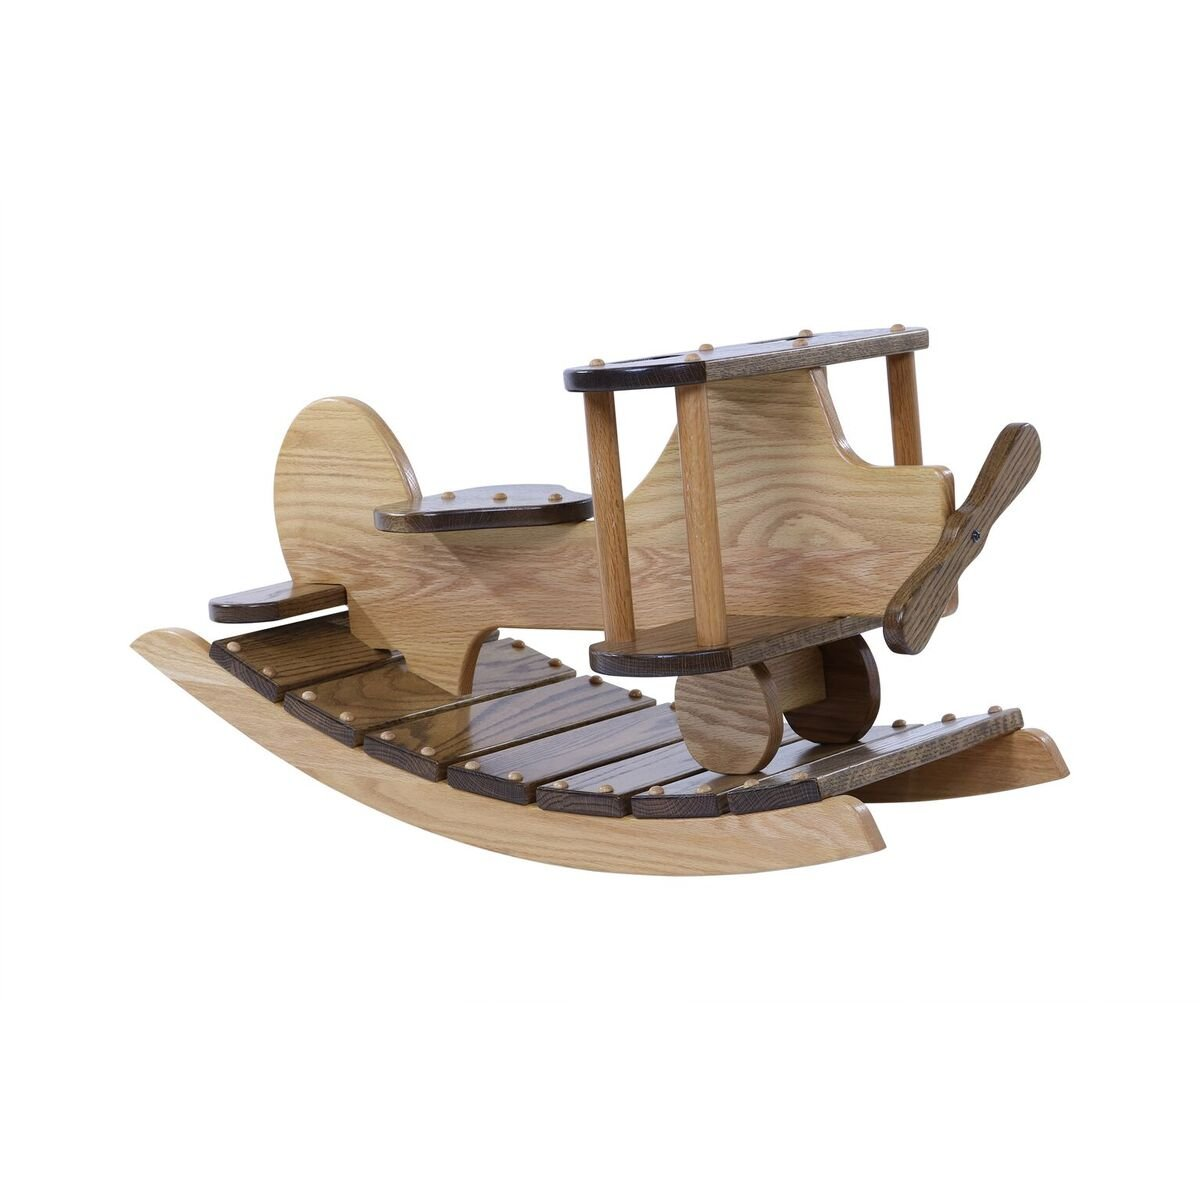 Airplane rocker Wooden rocking plane for toddlers and kids childs Nursery Room decor decoration Hand Crafted in Hickory the USA Made of solid oak Size: 33'' L x 17'' h 16'' . by DaySpring Milestones